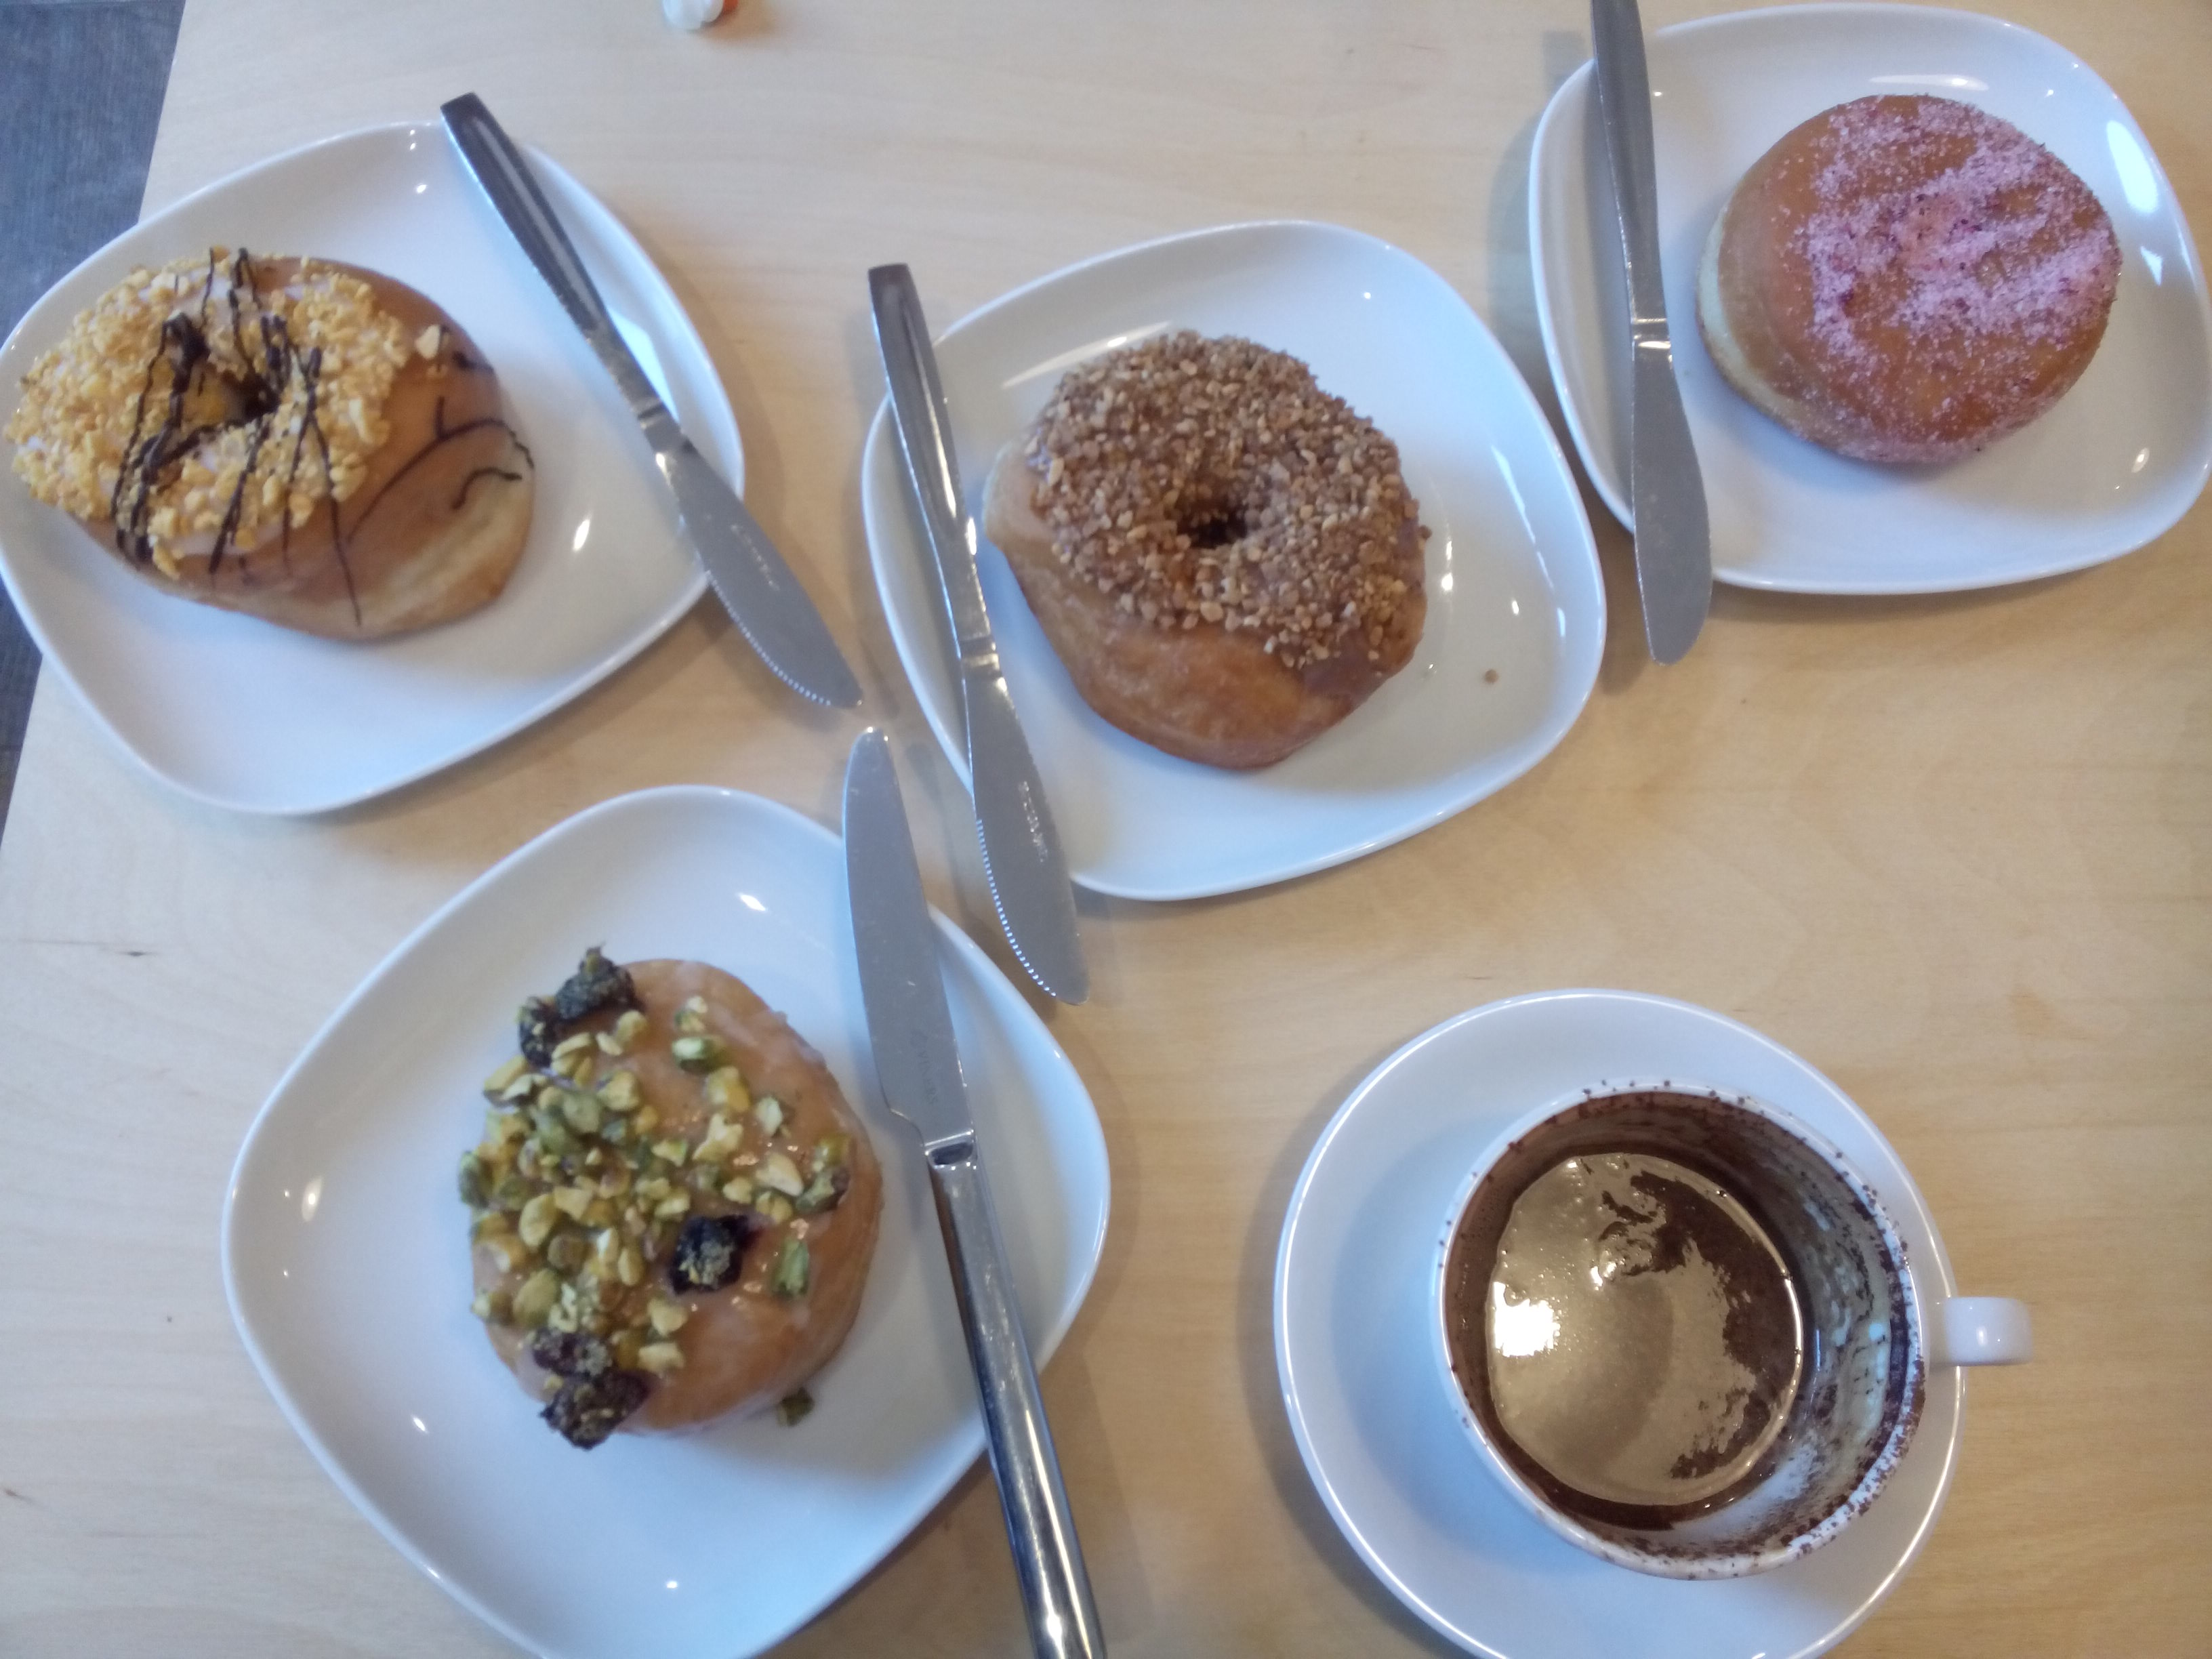 Four square white plates with doughnuts, and one cup of coffee, from above